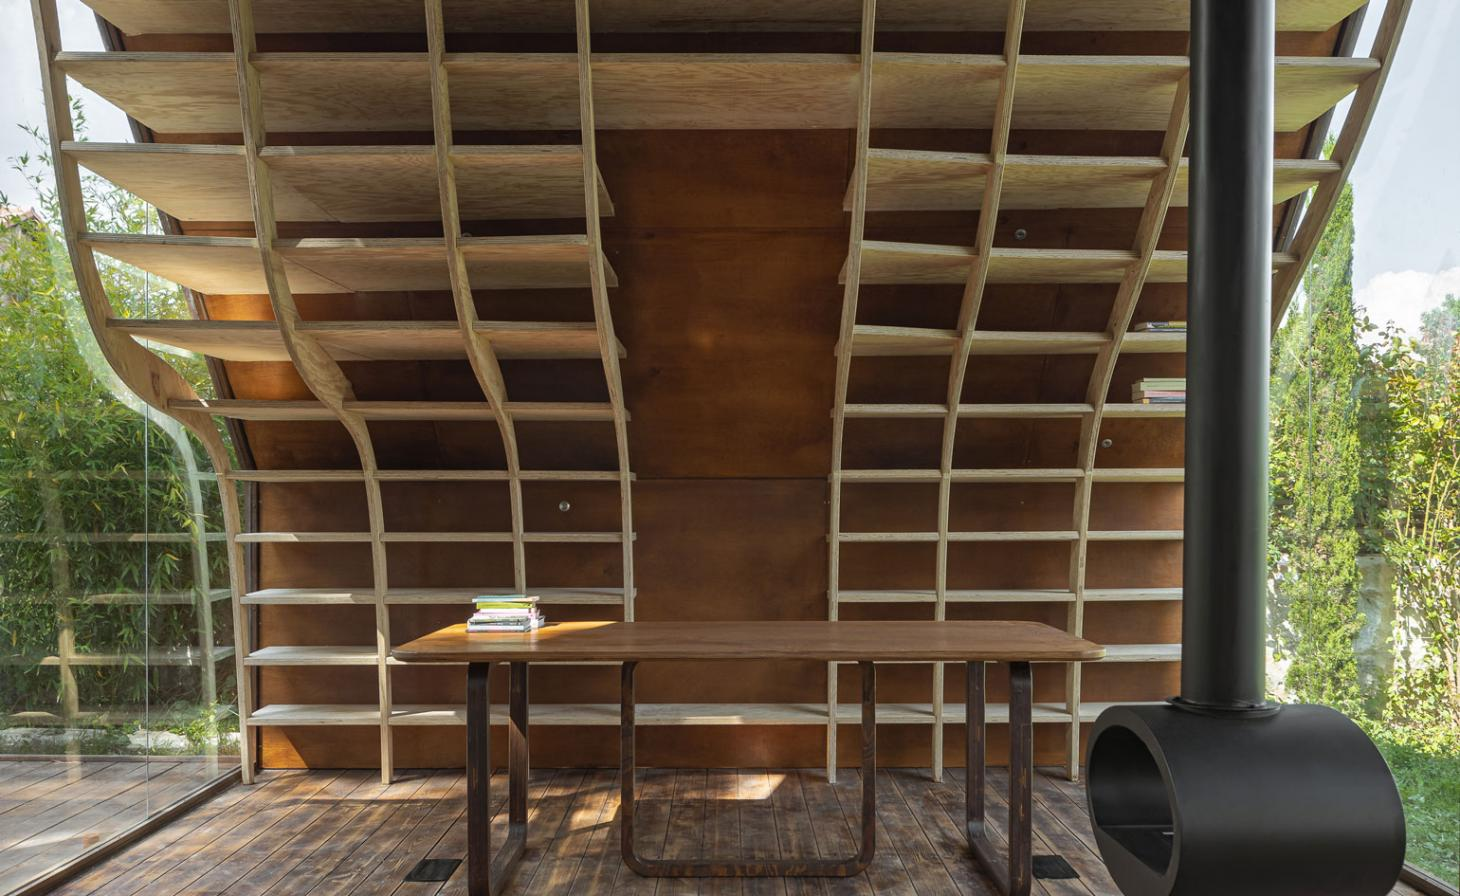 Cabin with curving wooden bookshelves